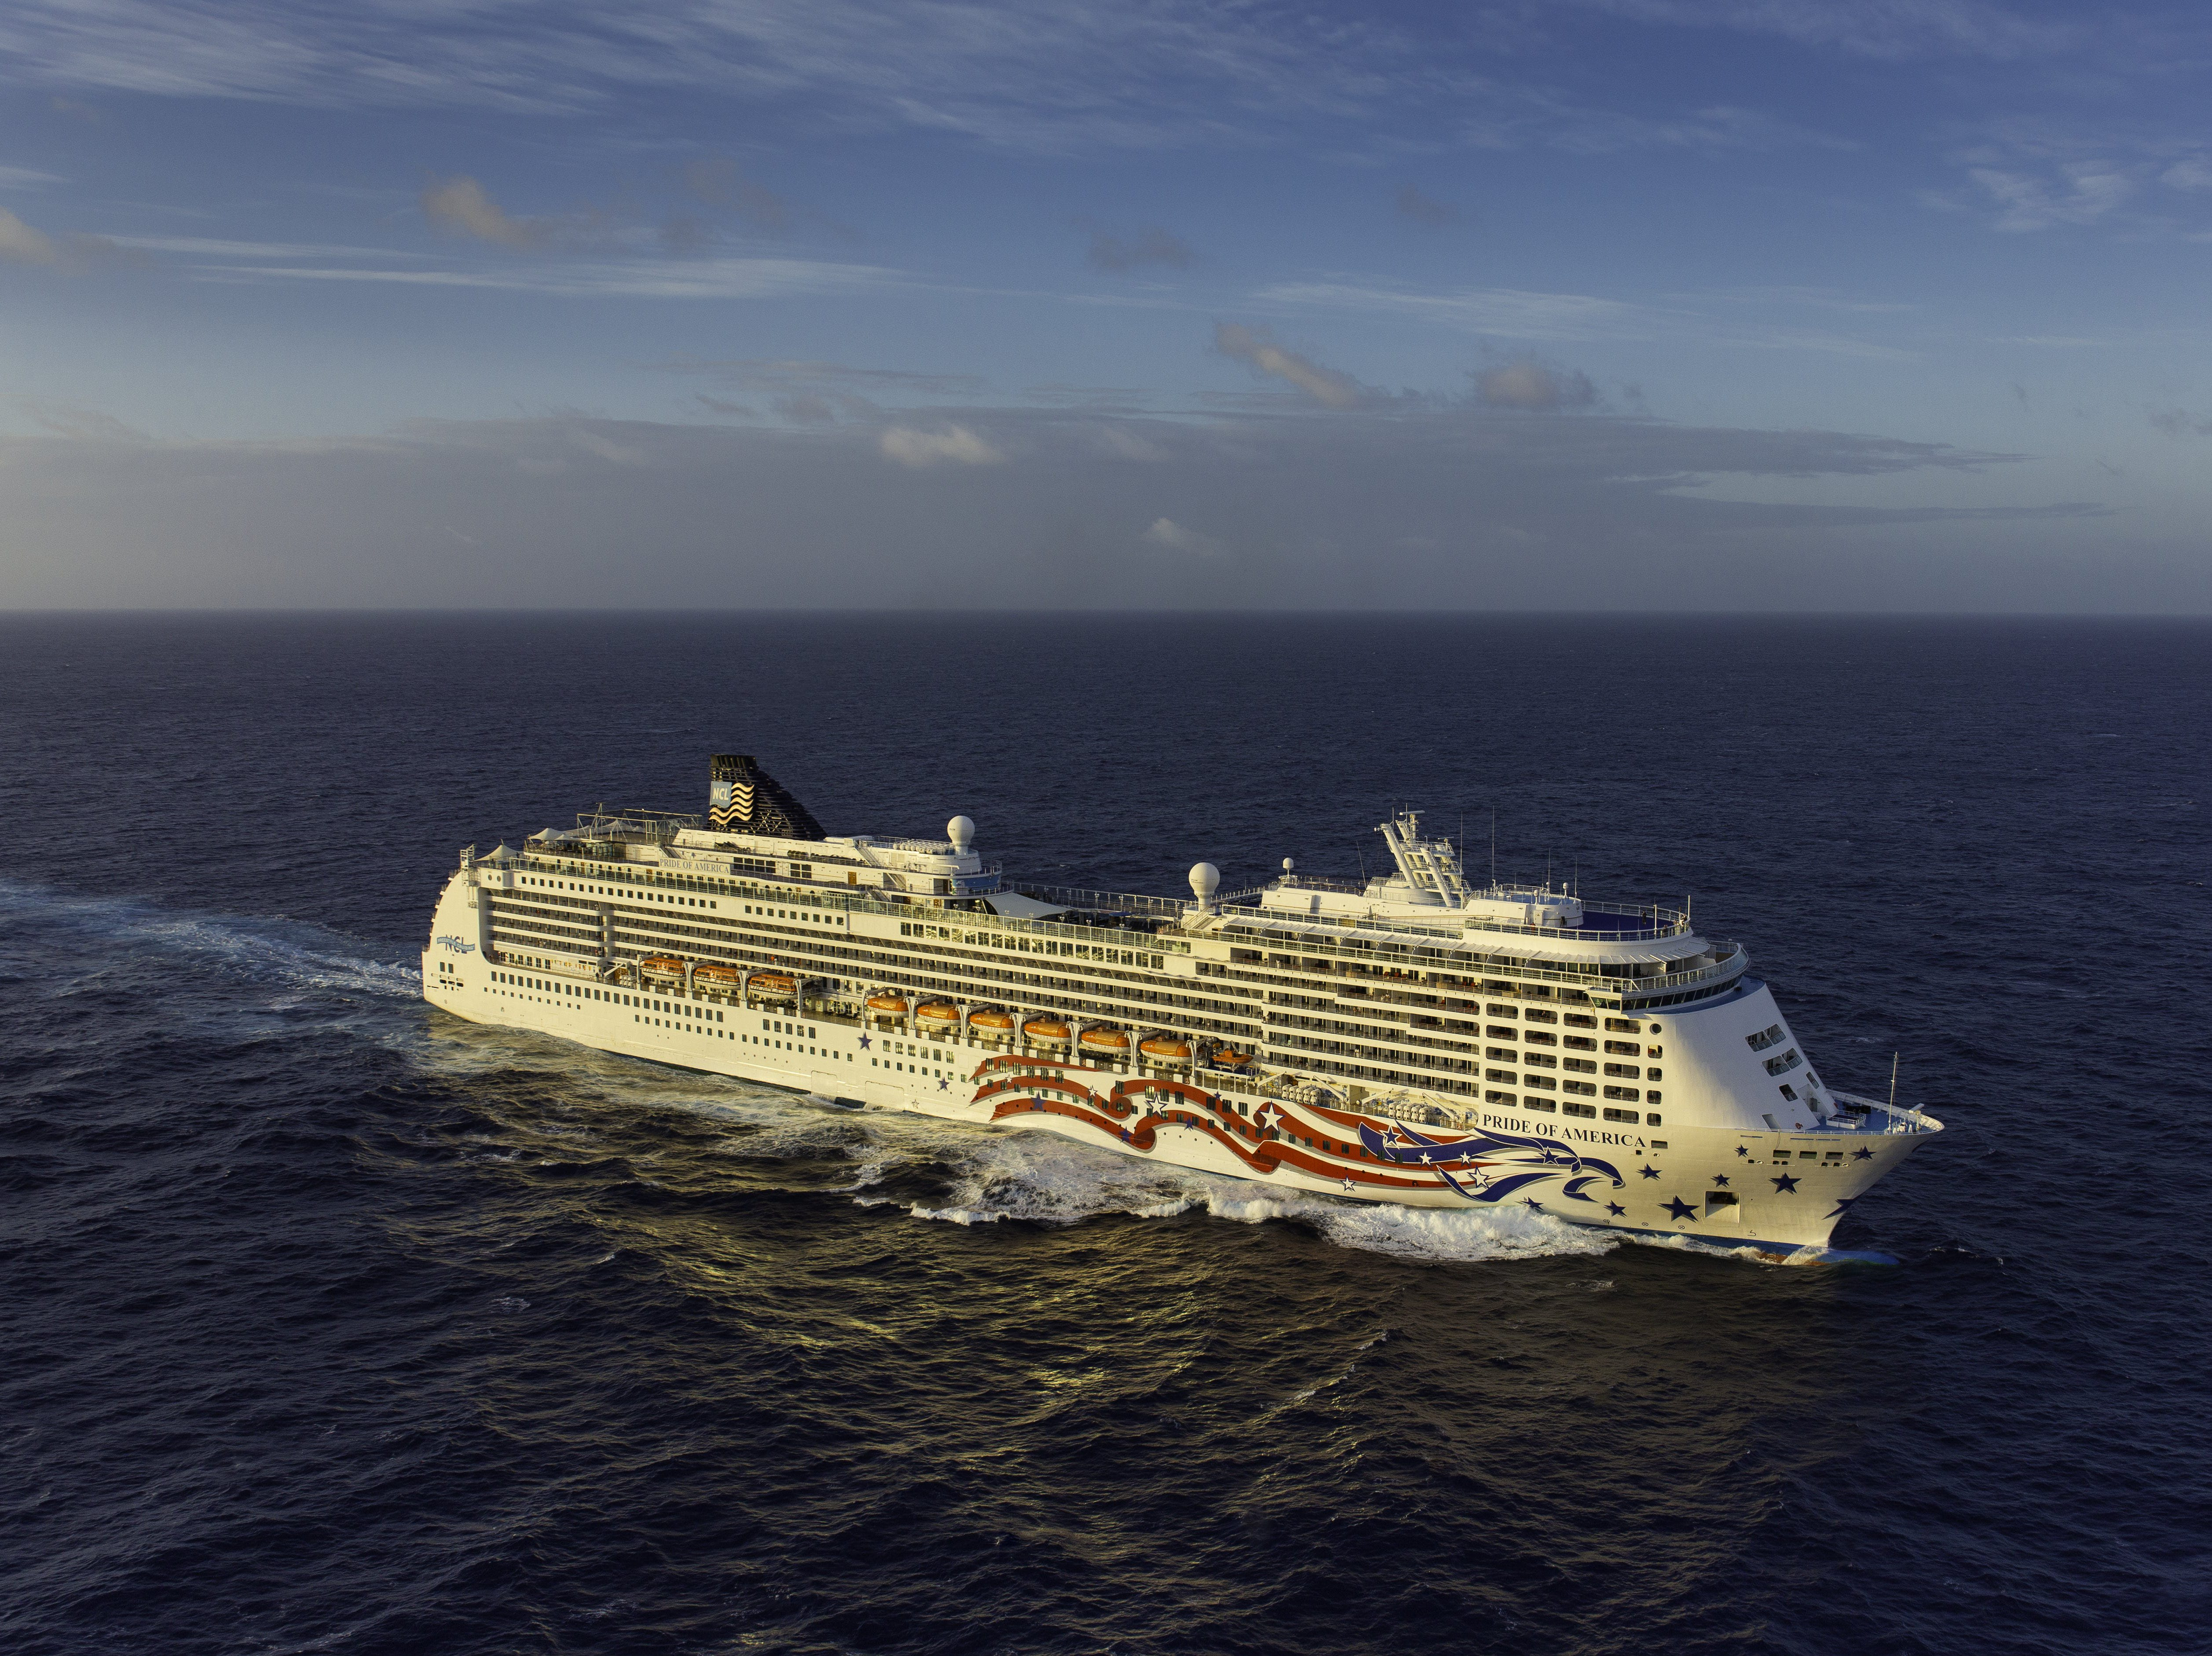 Unveiled in 2005, Norwegian Cruise Line's 2,186-passenger Pride of America sails year-round in the Hawaiian Islands.